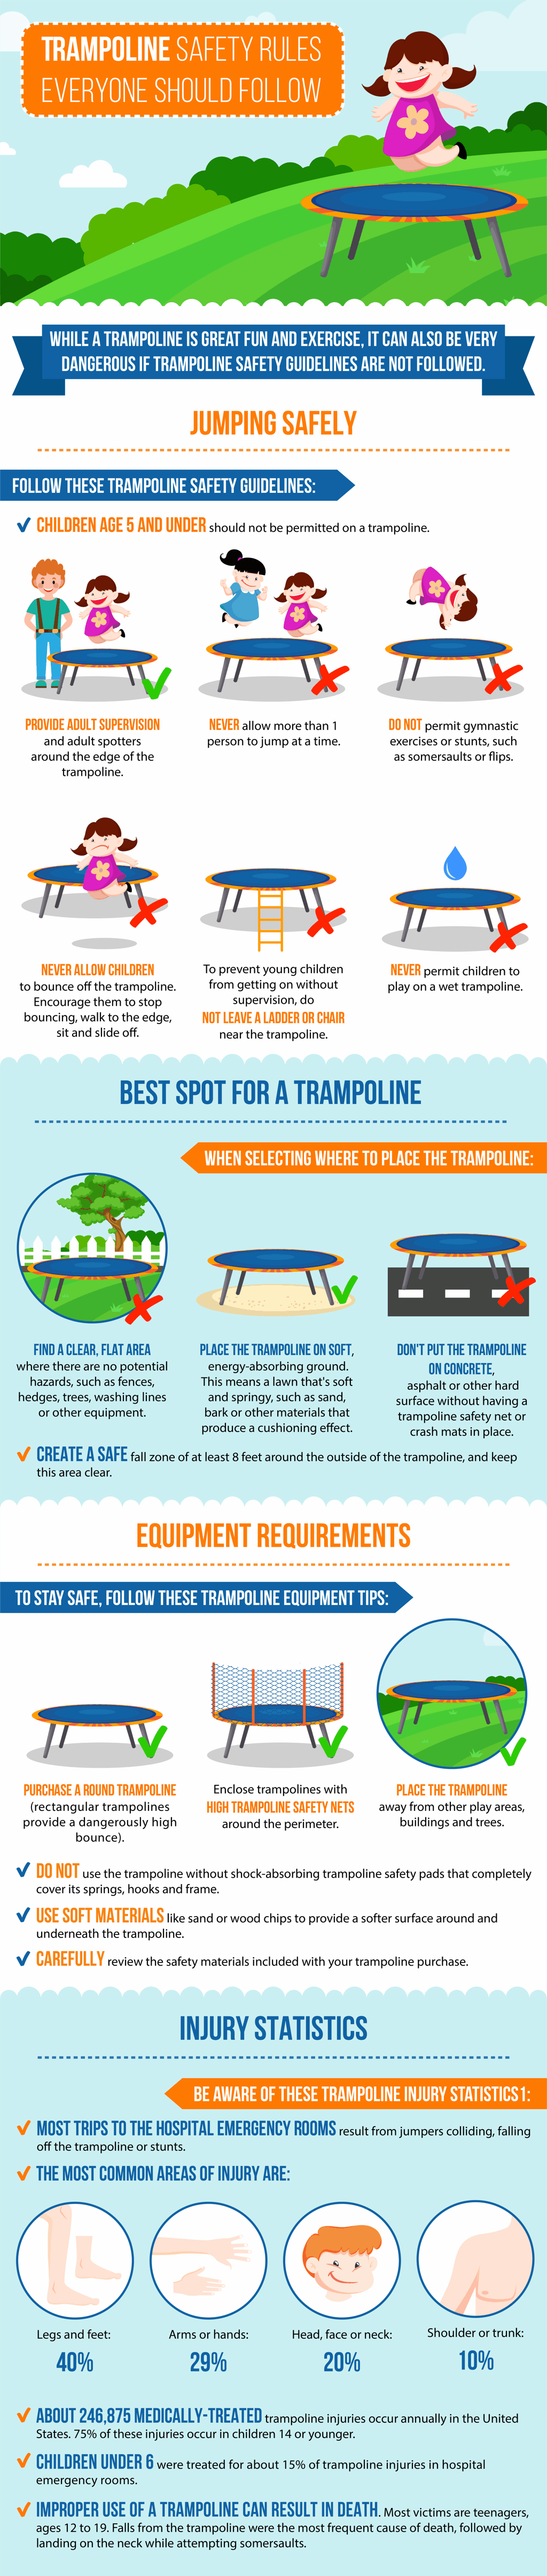 Trampoline Safety Rules Everyone Should Follow